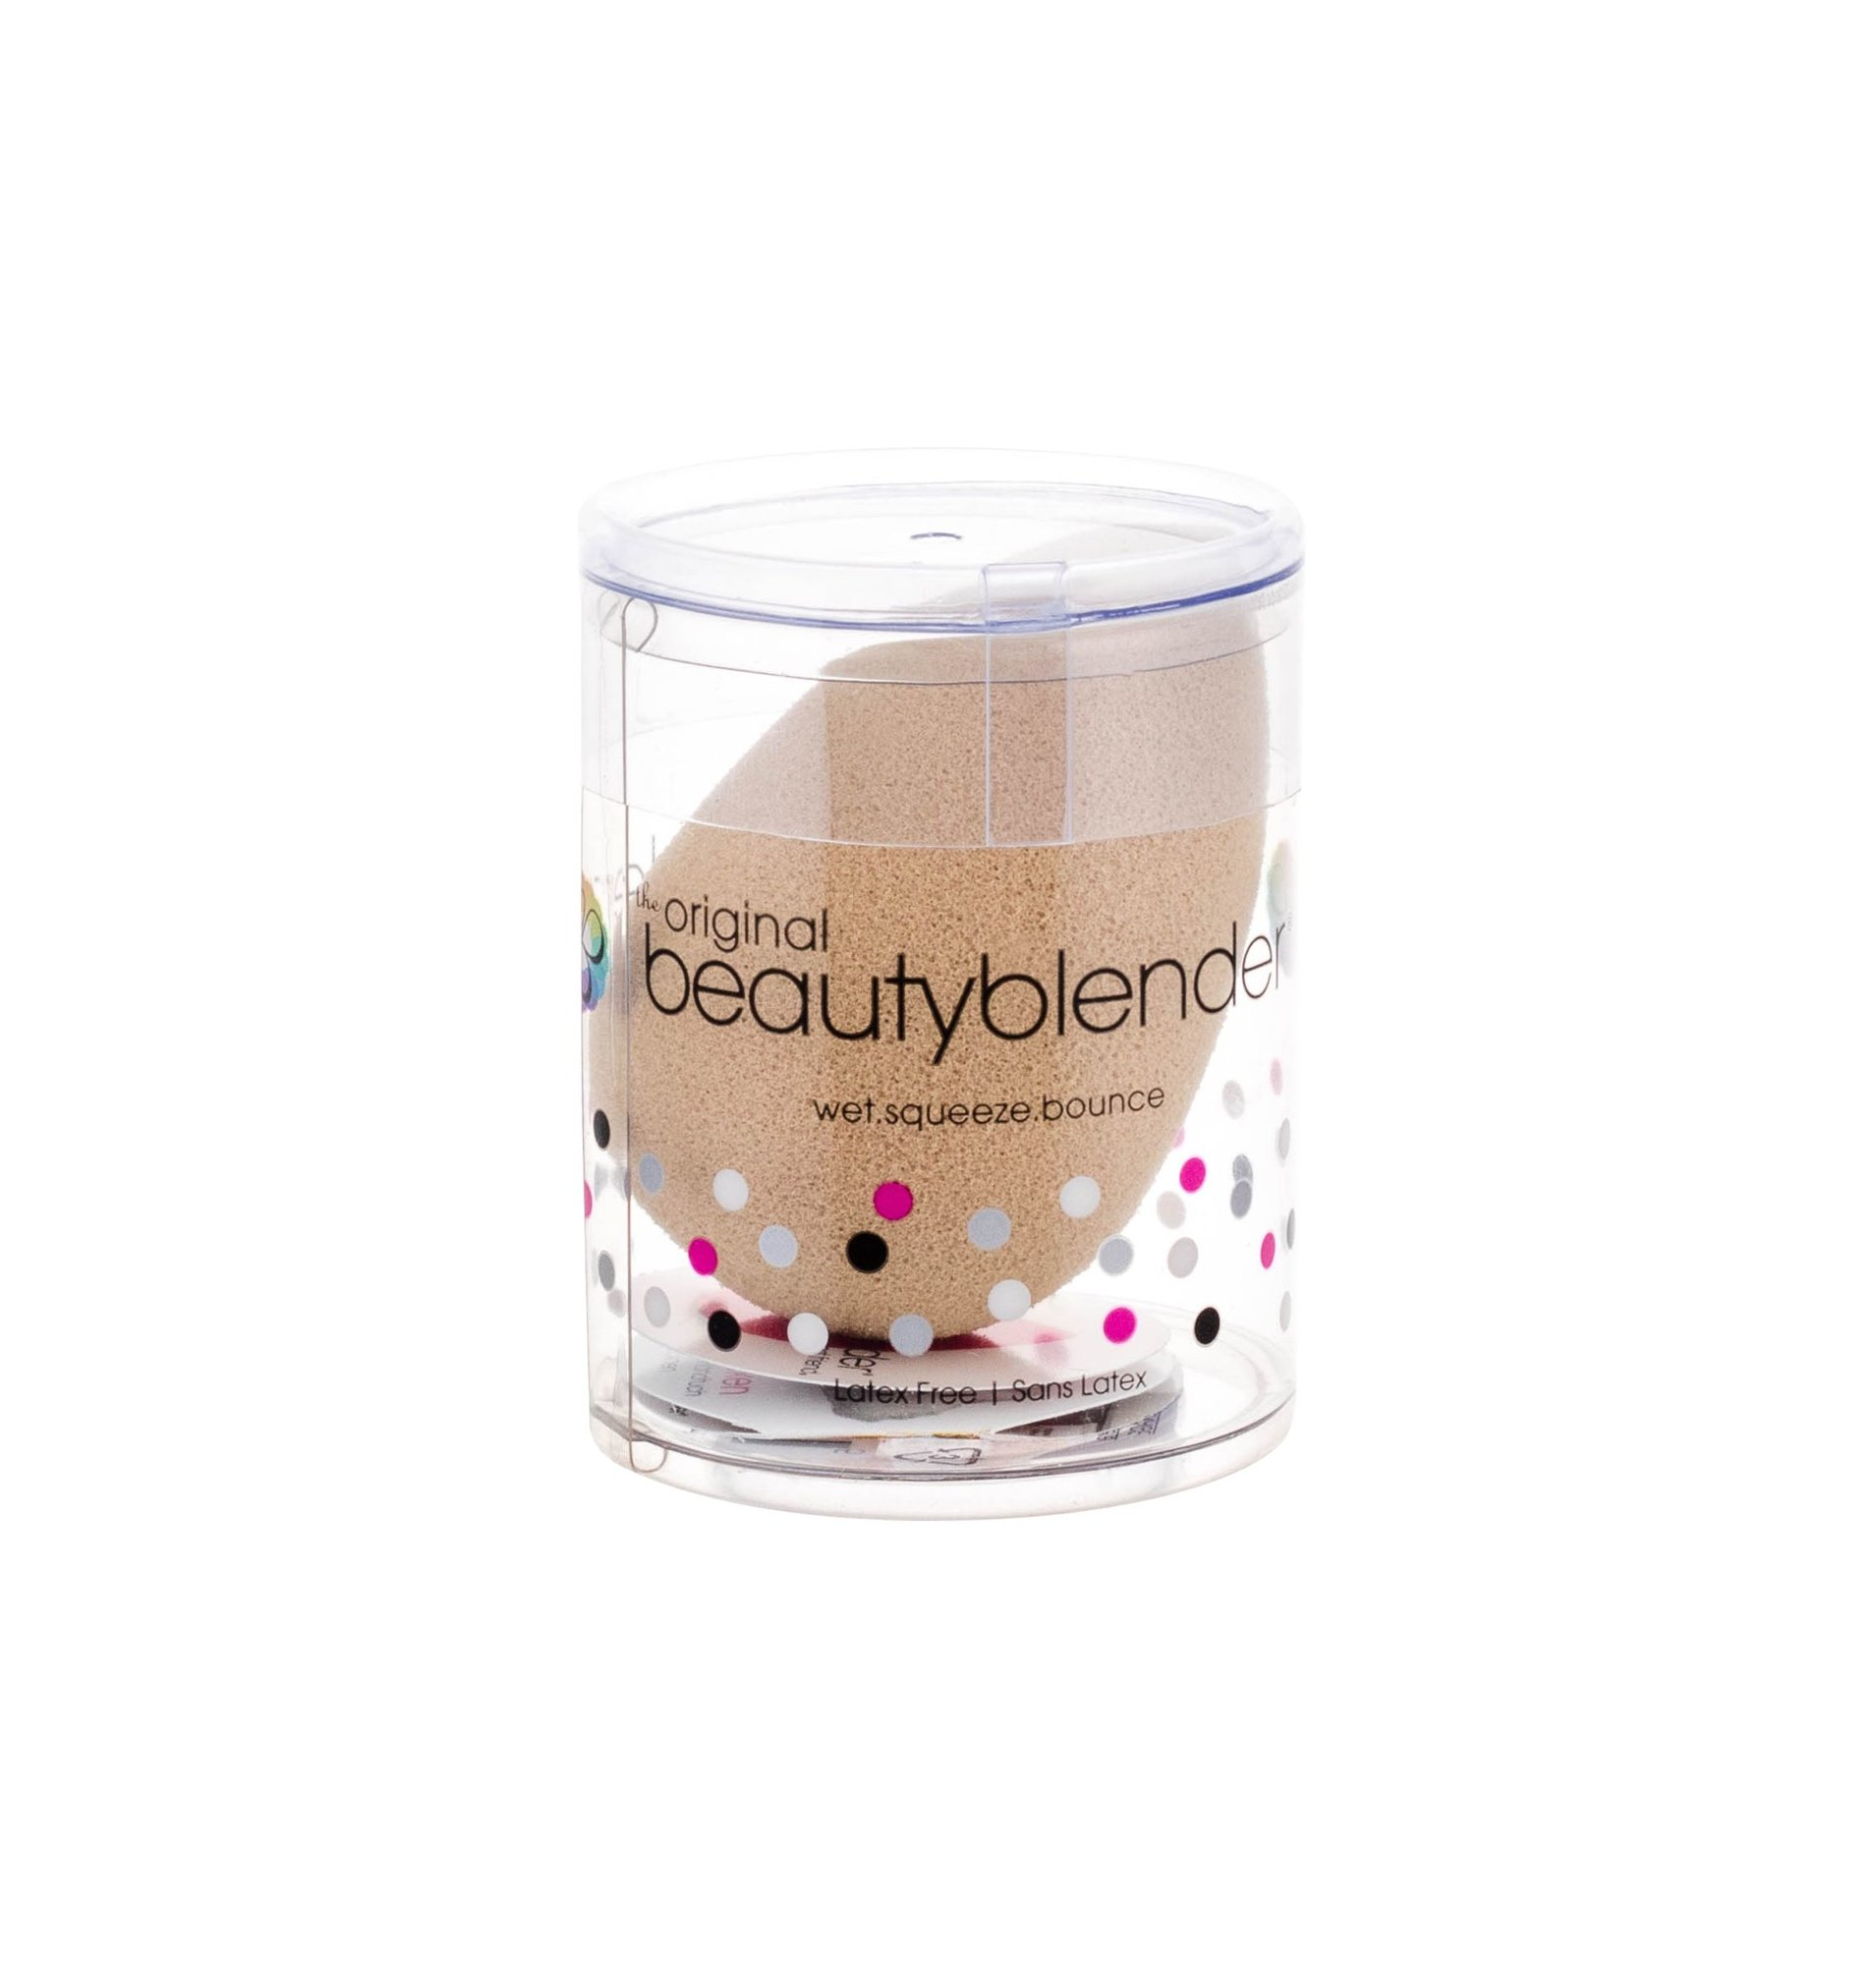 beautyblender the original Applicator 1ml Nude